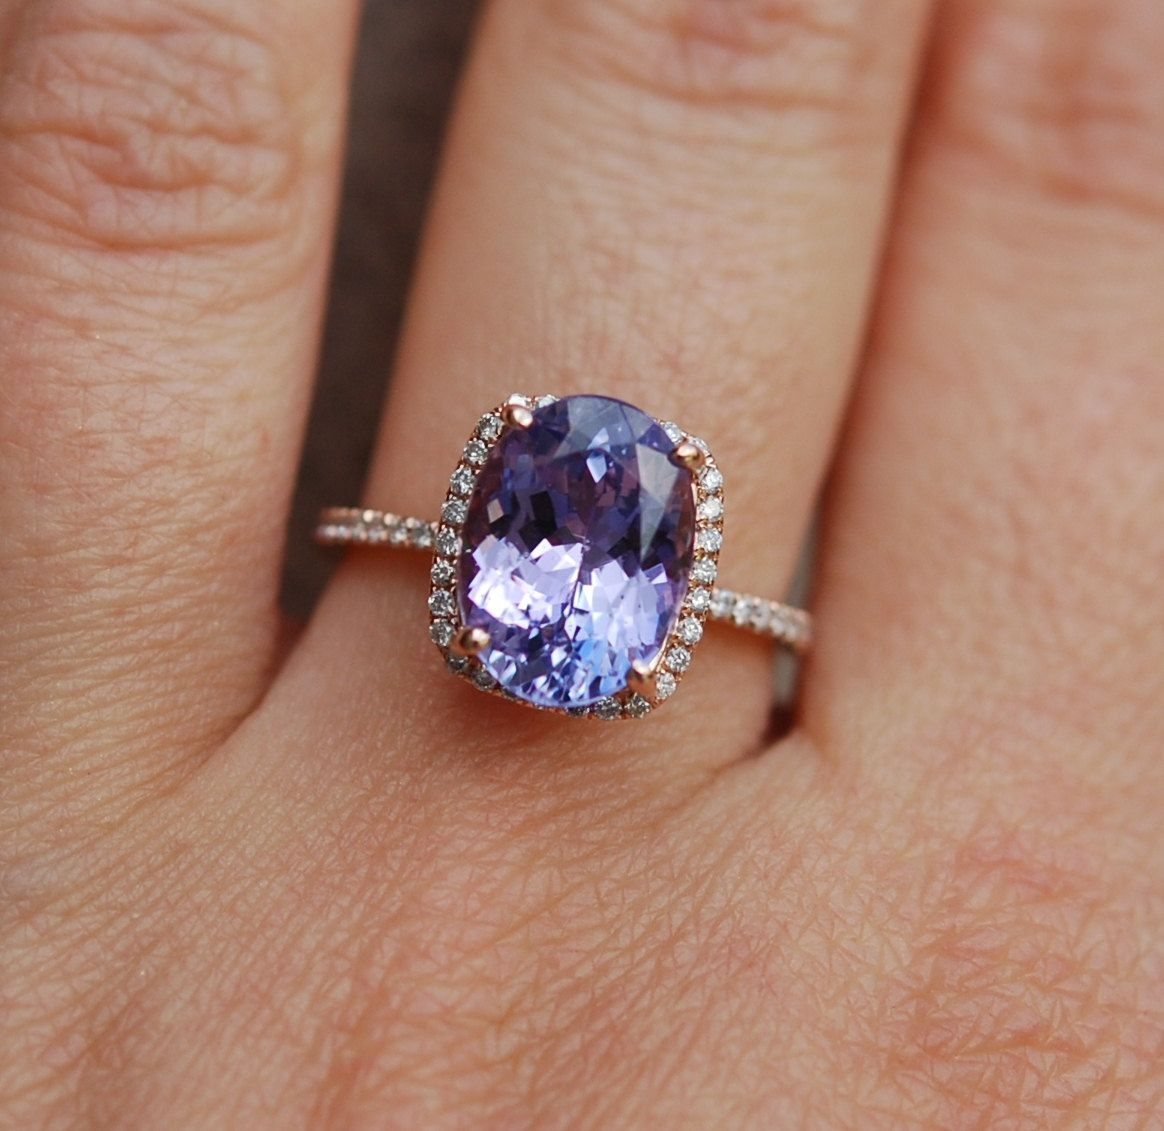 reserved part 2 tanzanite ring rose gold engagement ring 216ct lavender lilac tanzanite oval cut engagement ring 14k rose gold - Tanzanite Wedding Rings